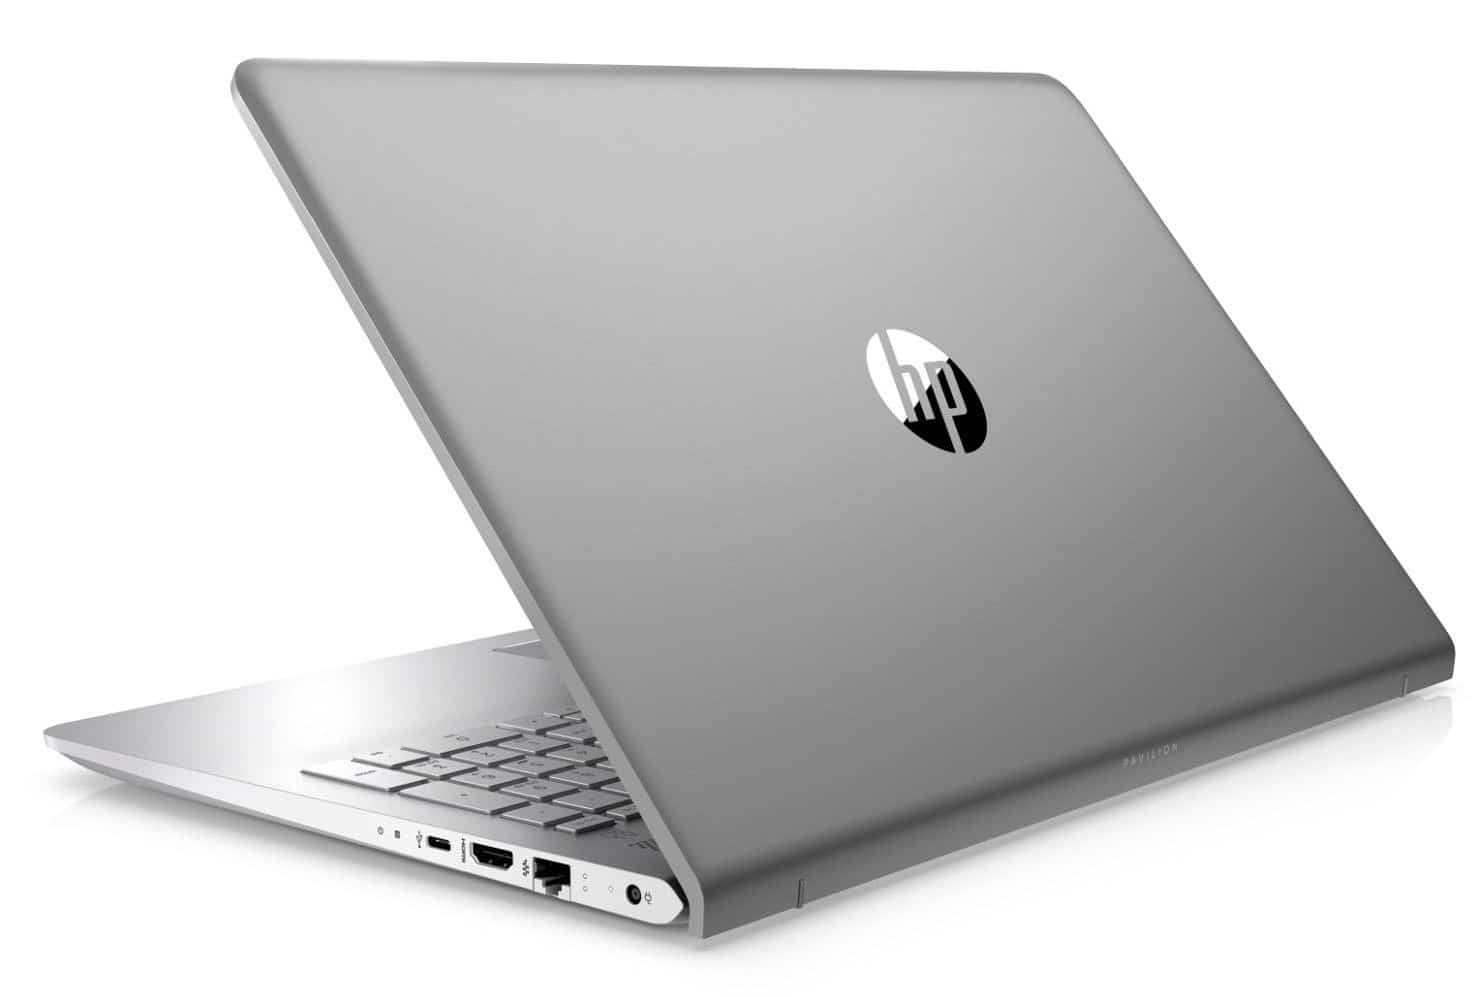 HP Pavilion 15-cc516nf, ultrabook 15 pouces Full HD i7 Kaby 940MX à 699€